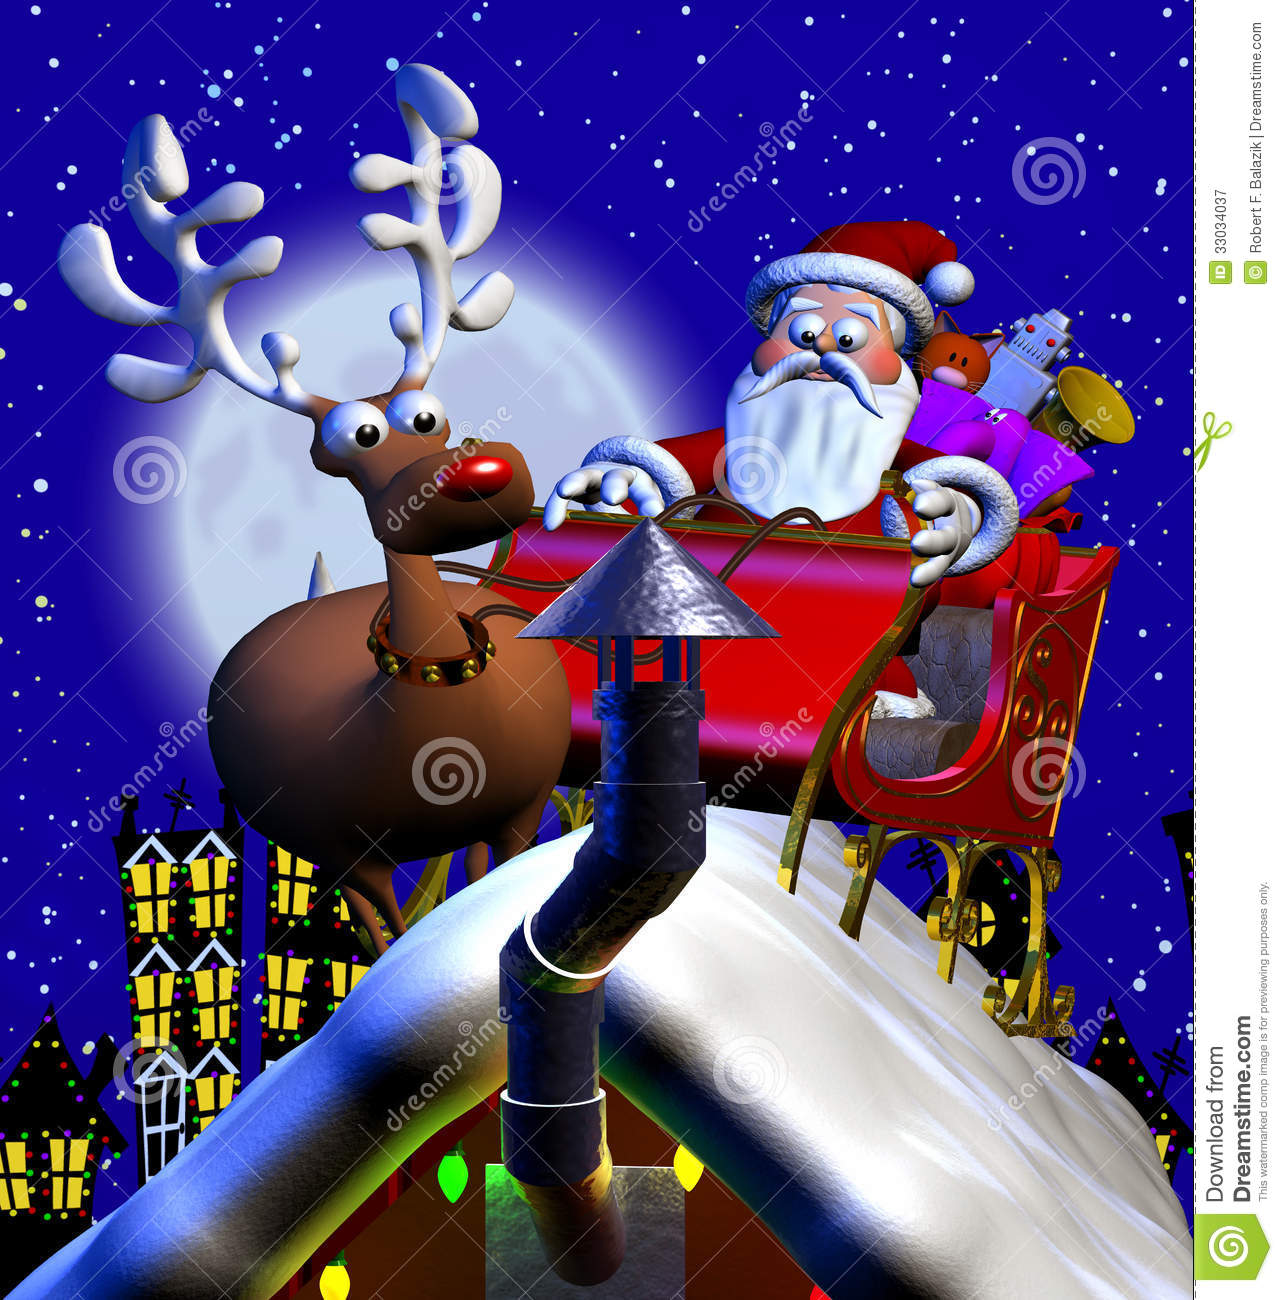 Computer-generated 3D cartoon illustration depicting Santa Claus on a ...